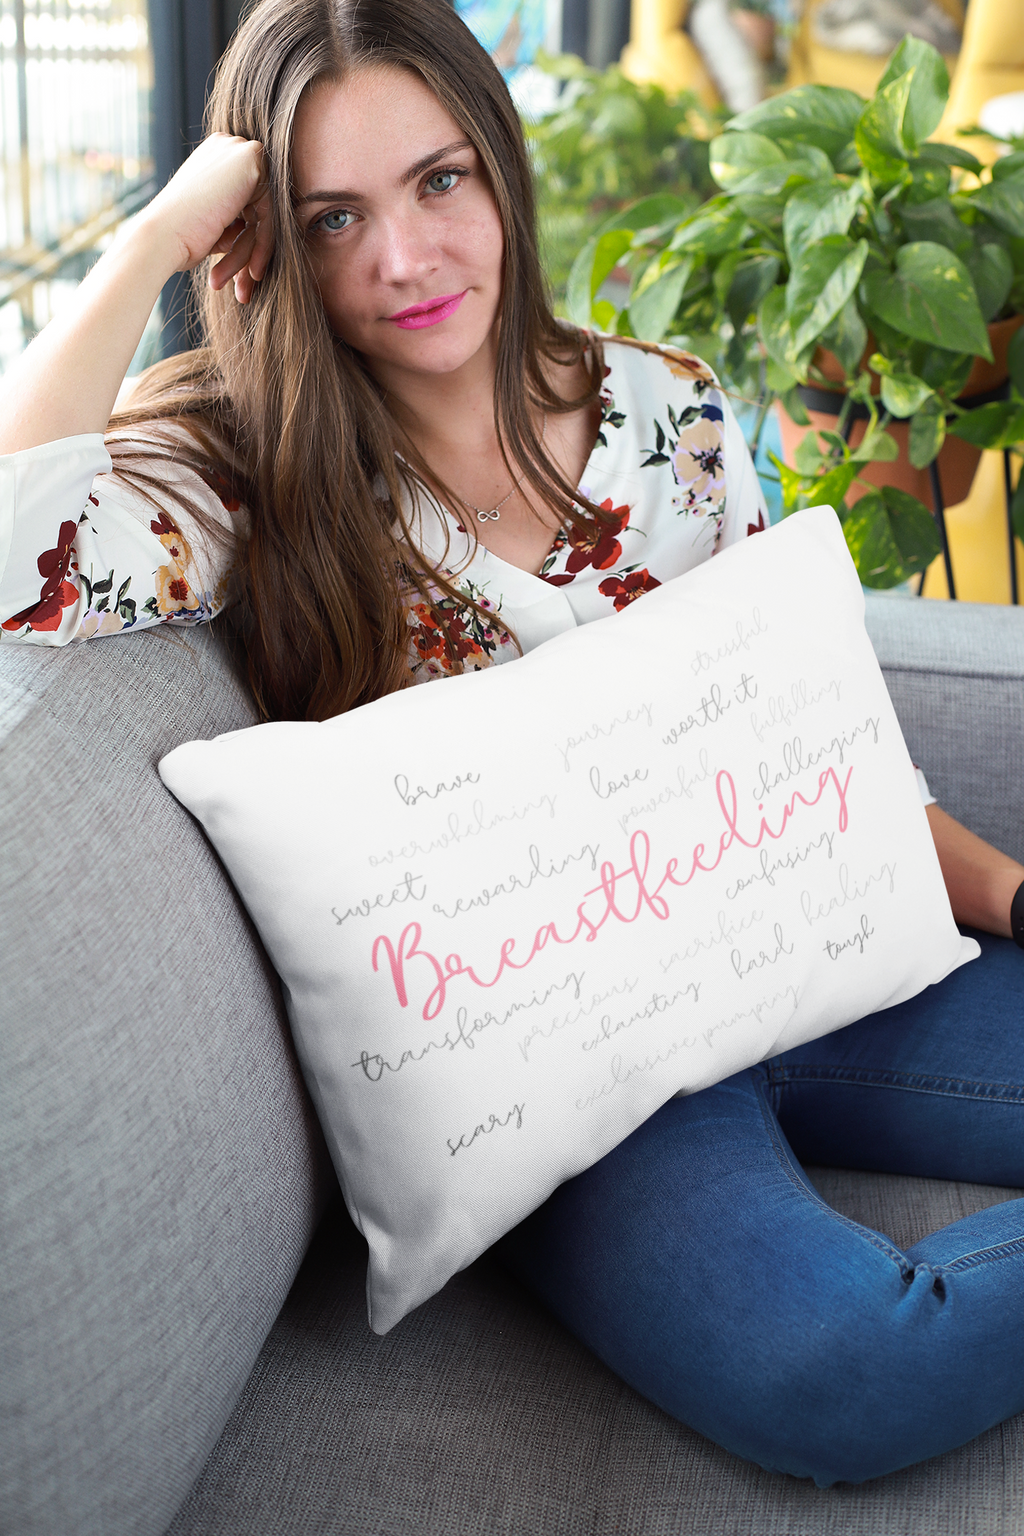 Woman holding pillow with the Breastfeeding surrounded by powerful words to describe it.